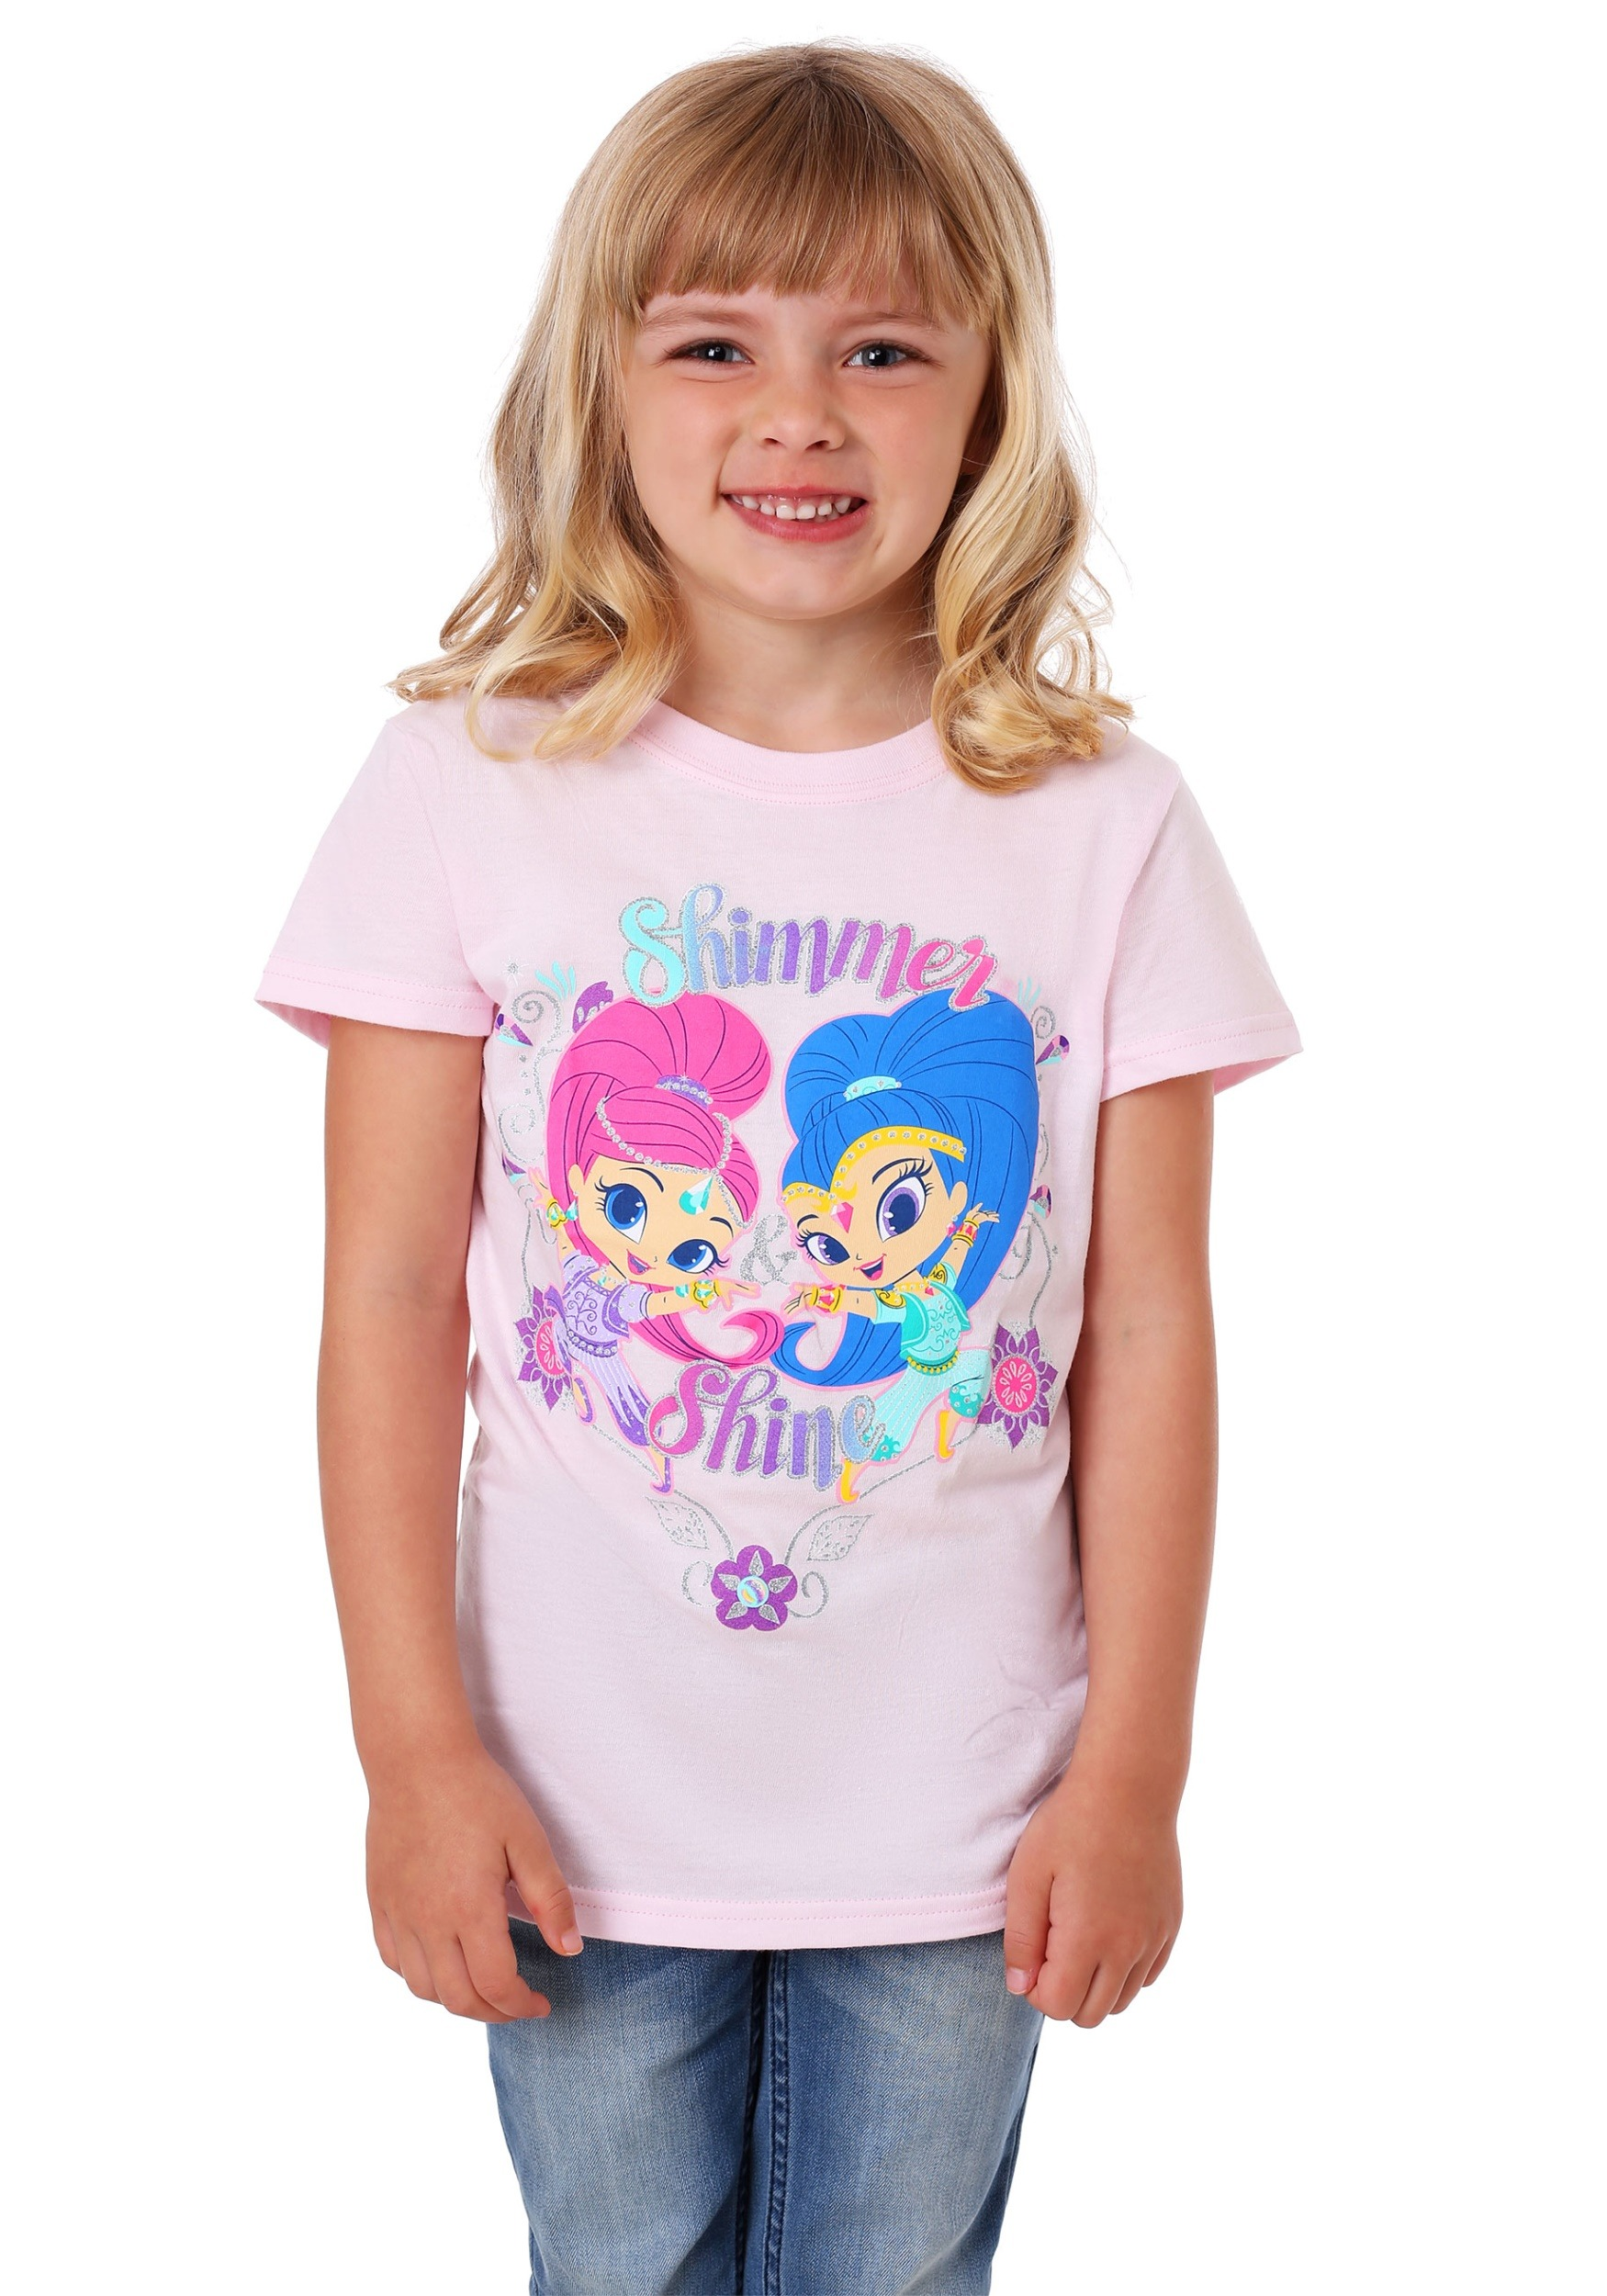 901ee0583259 Girls Kid's Shimmer and Shine Silver Glitter T-Shirt